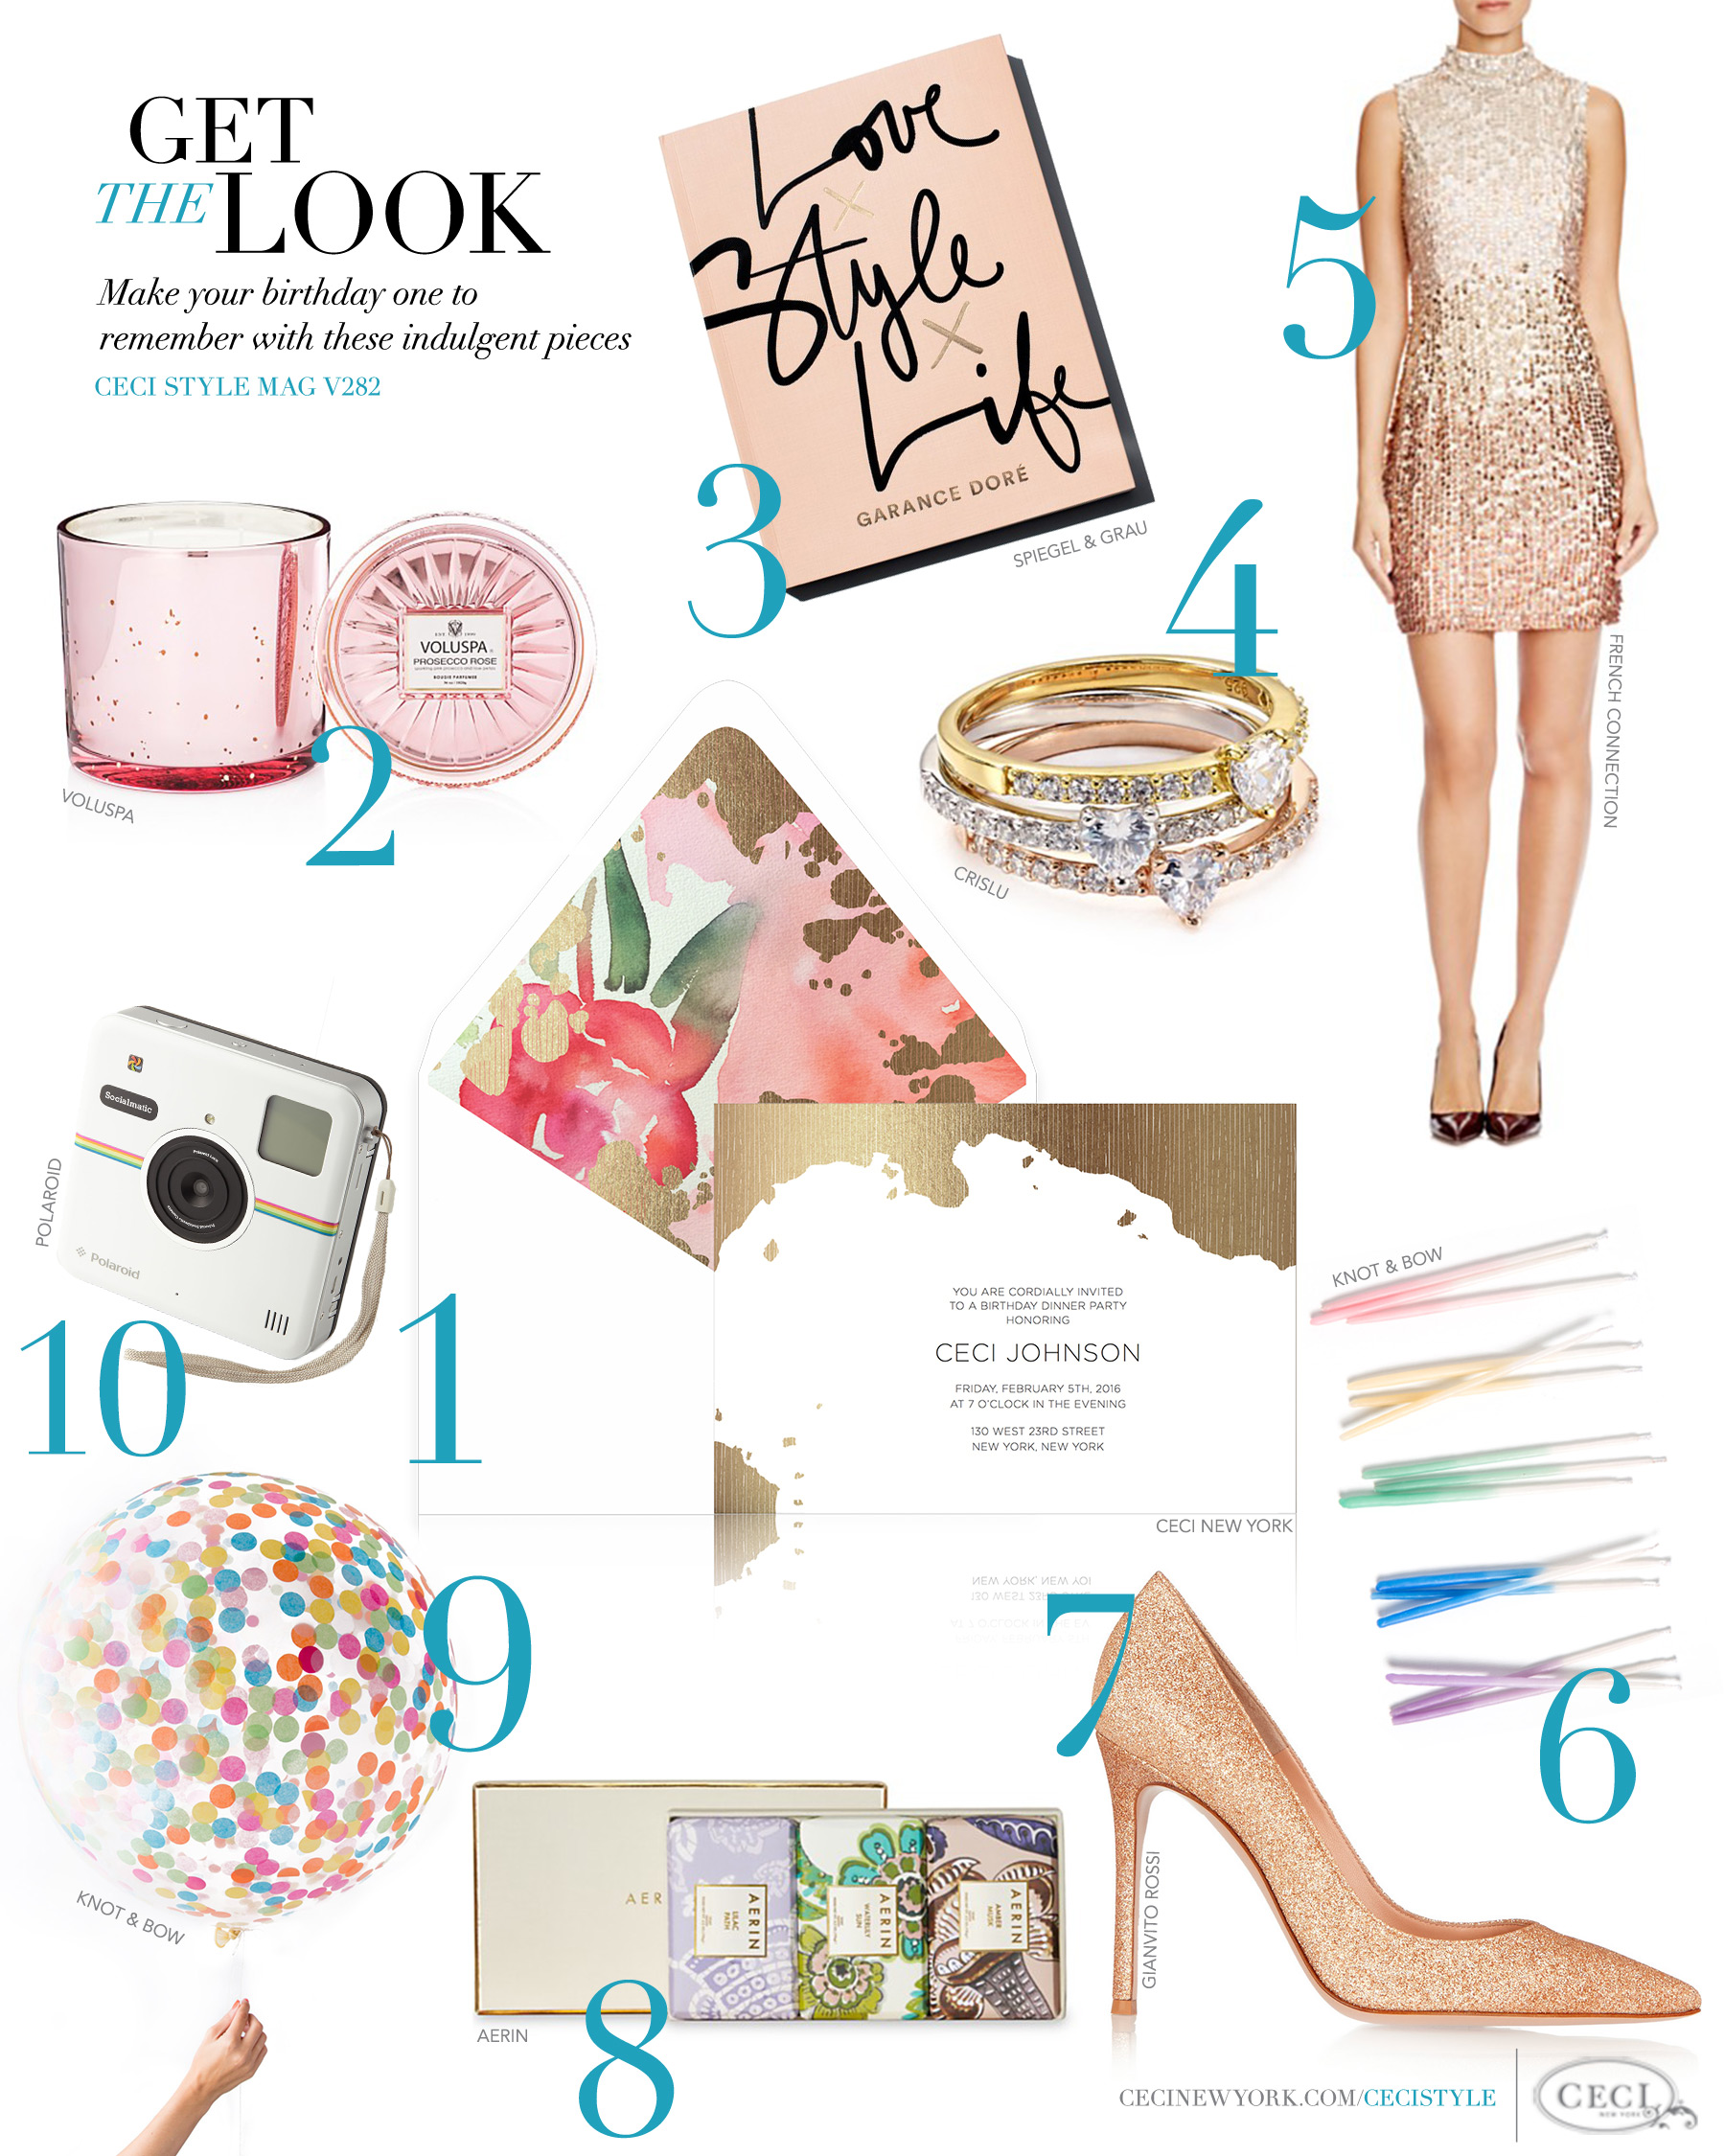 CeciStyle Magazine v282: Get The Look - Happy Birthday Ceci! - Make your birthday one to remember with these indulgent pieces - Luxury Wedding Invitations by Ceci New York - ceci new york, luxury invitation, birthday invitation, ceci johnson, voluspa, garance dore, crislu, french connection, knot and bow, gianvito, aerin, polaroid, home goods, gift idea, black, gifts, presents, glitter, metallic, sequin, party, fun, jewelry, fashion, style, food